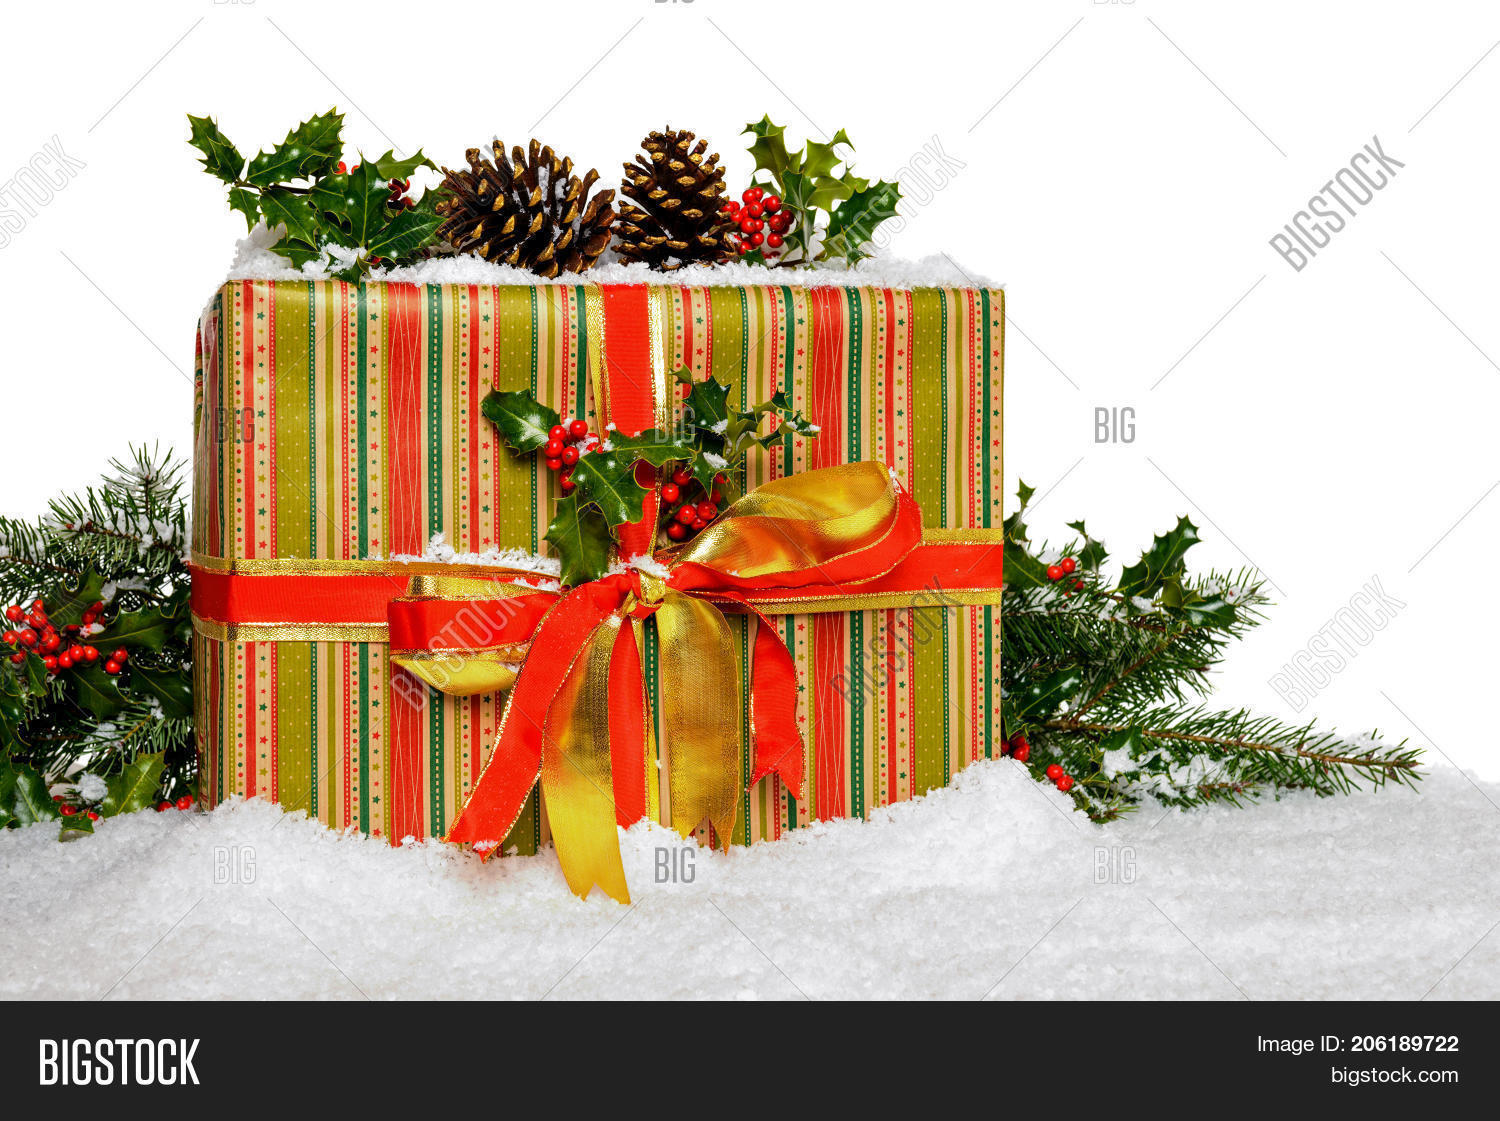 Gift Wrapped Christmas Image Photo Free Trial Bigstock